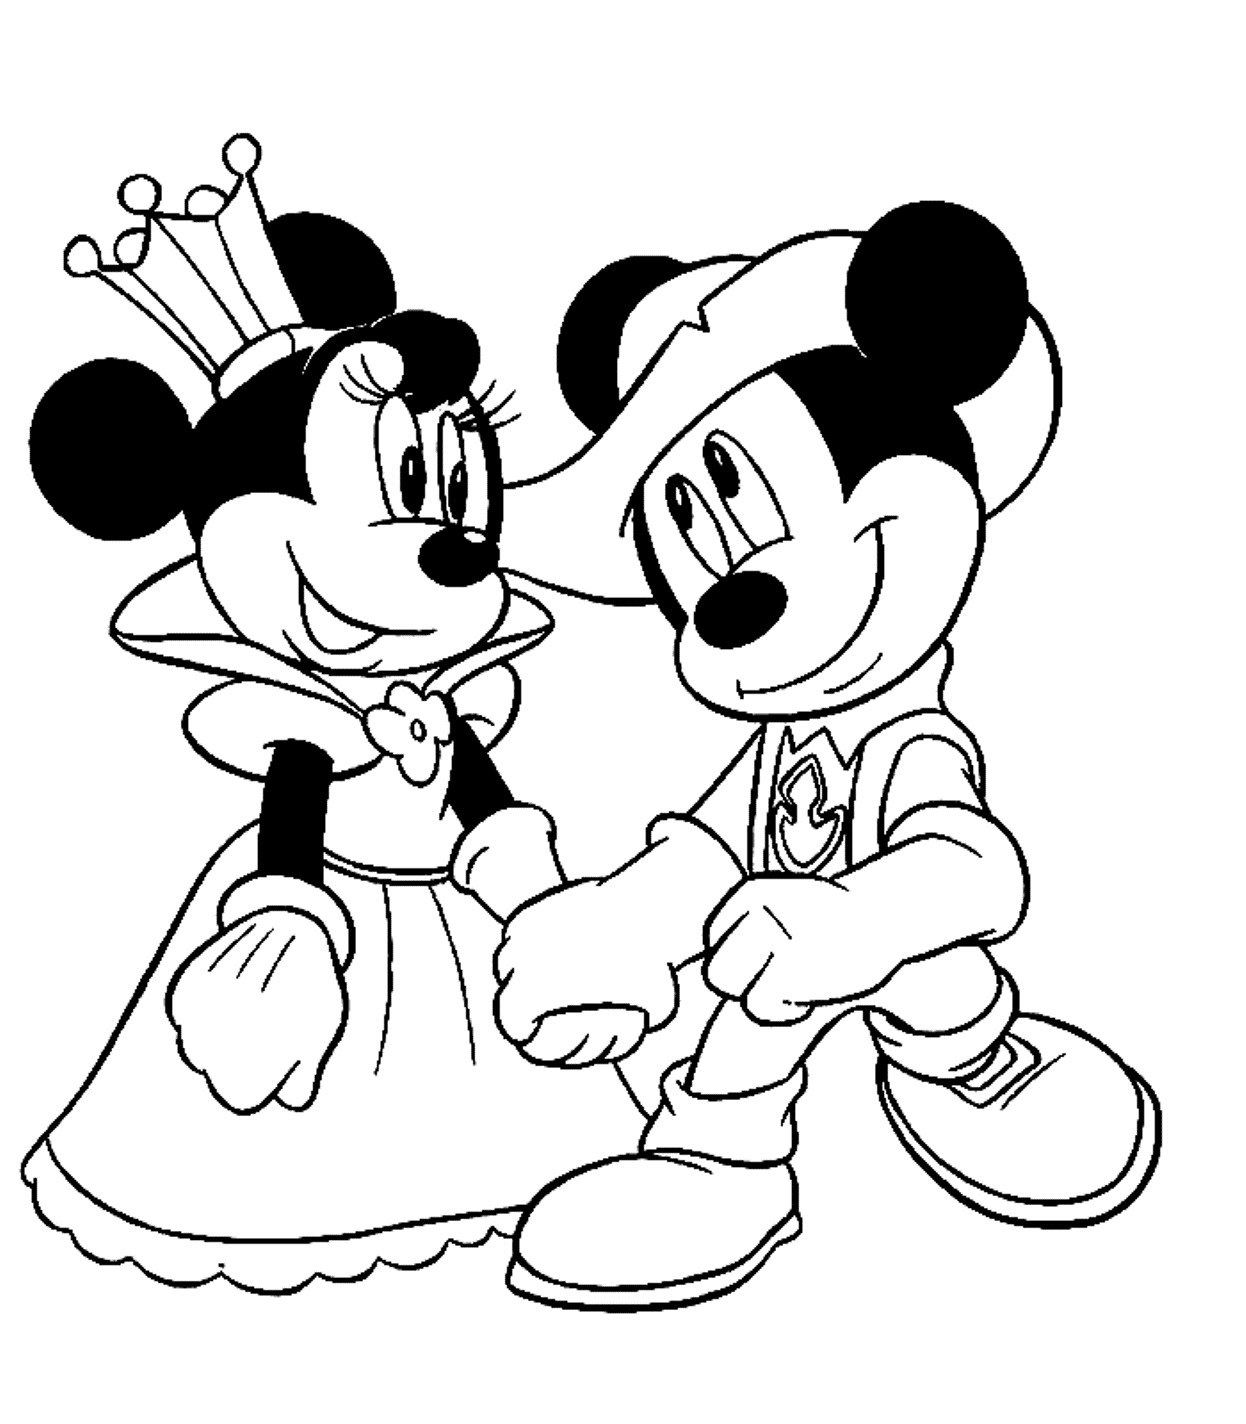 drawing minnie mouse face mini mouse vector clipart cut file minnie mouse clip art minnie drawing face mouse